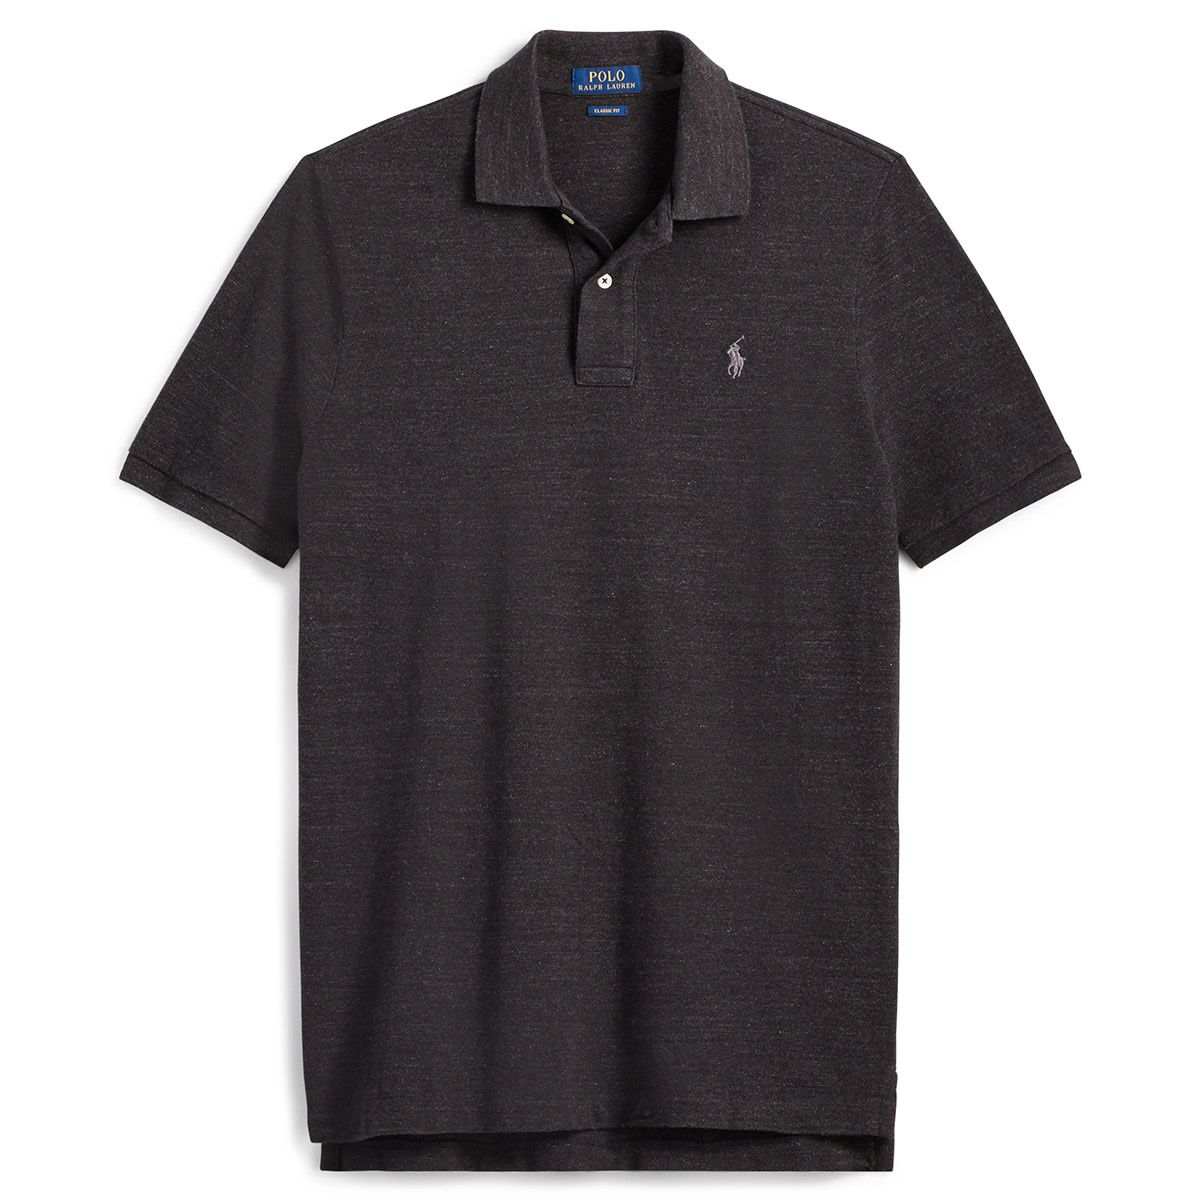 Polo Ralph Lauren Mens Polo Shirts - Macy s c73519babf7fb